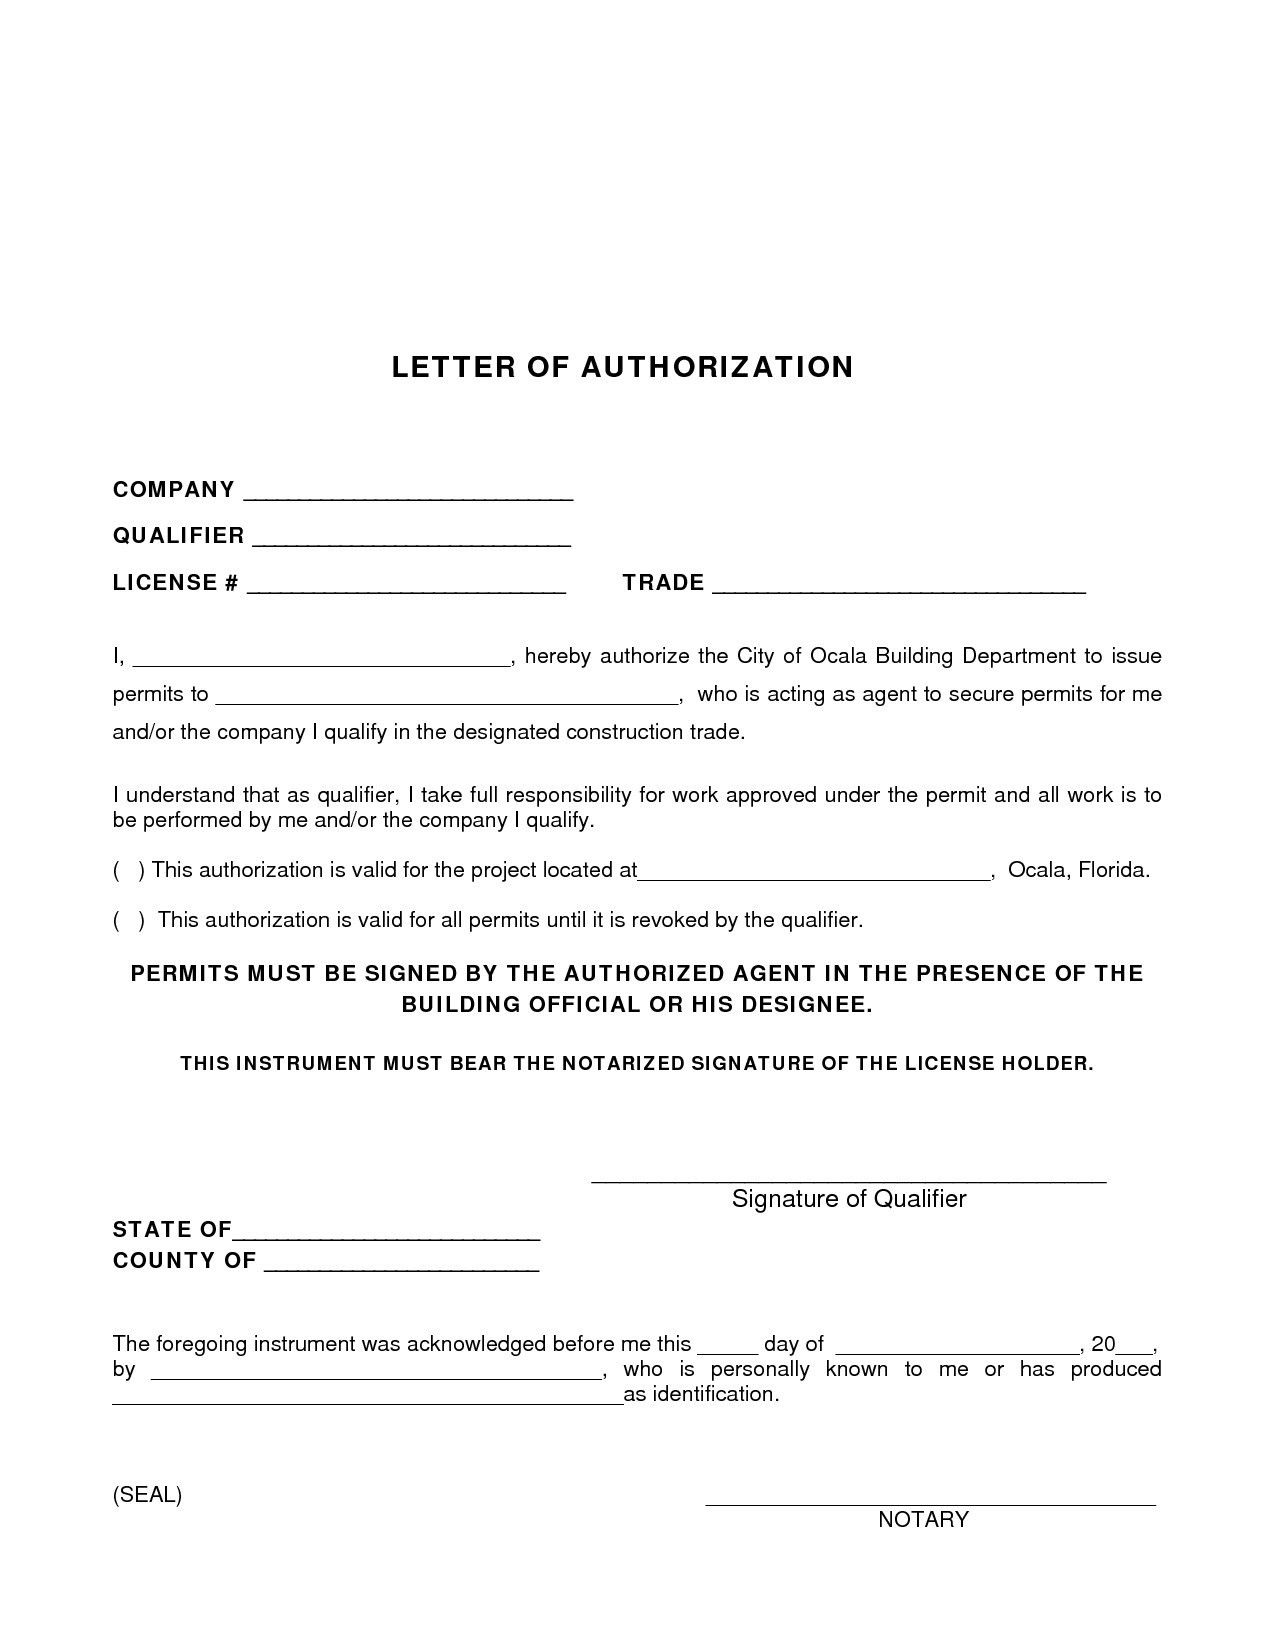 Consent Valid Letter… You This Letter For Business License See Letter Free Can At Request Format